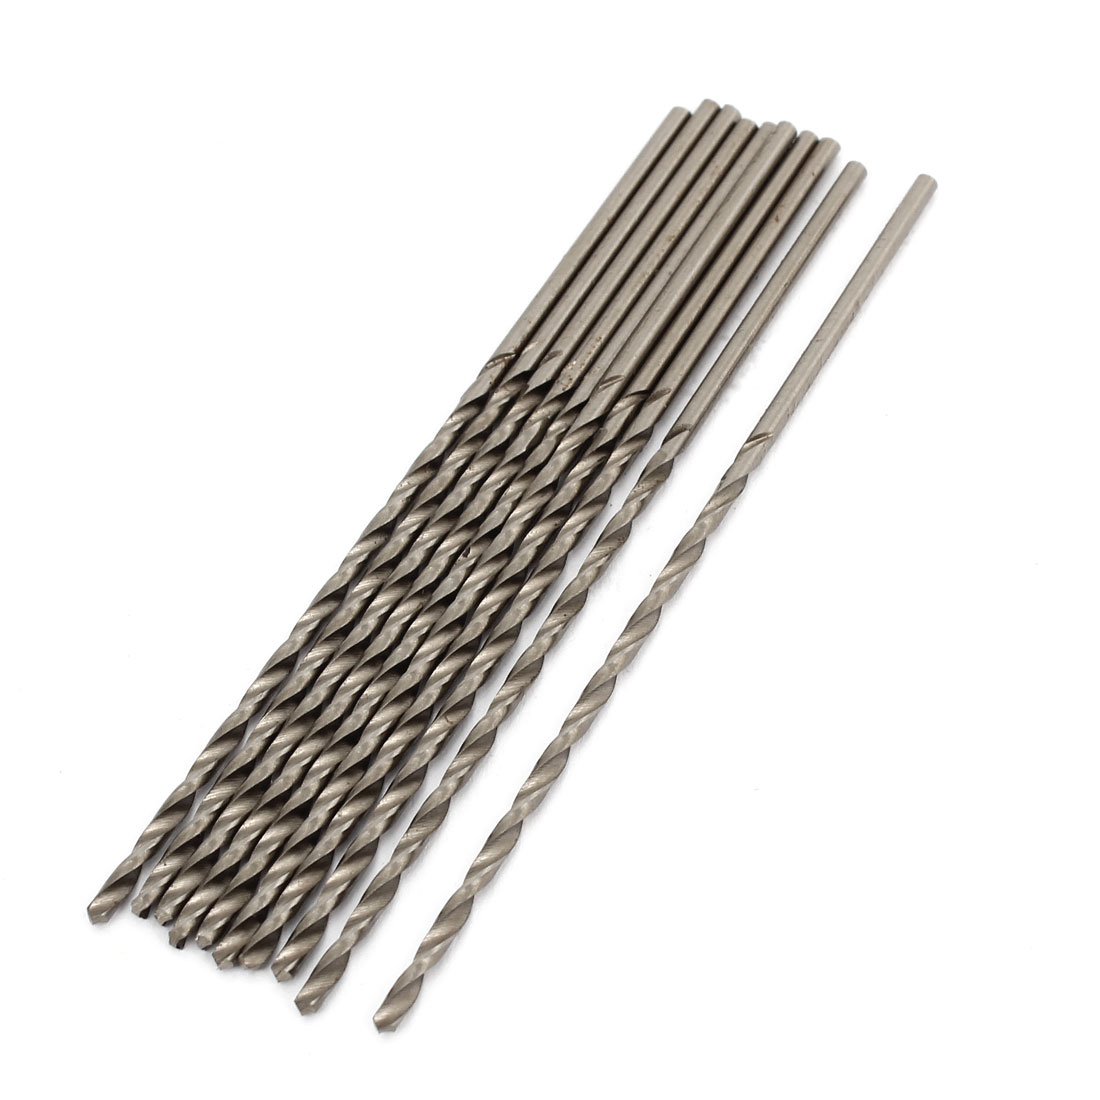 HSS 1.6mm x 50mm Tip Straight Shank Twist Electric Drill Drilling Bit 10 Pcs